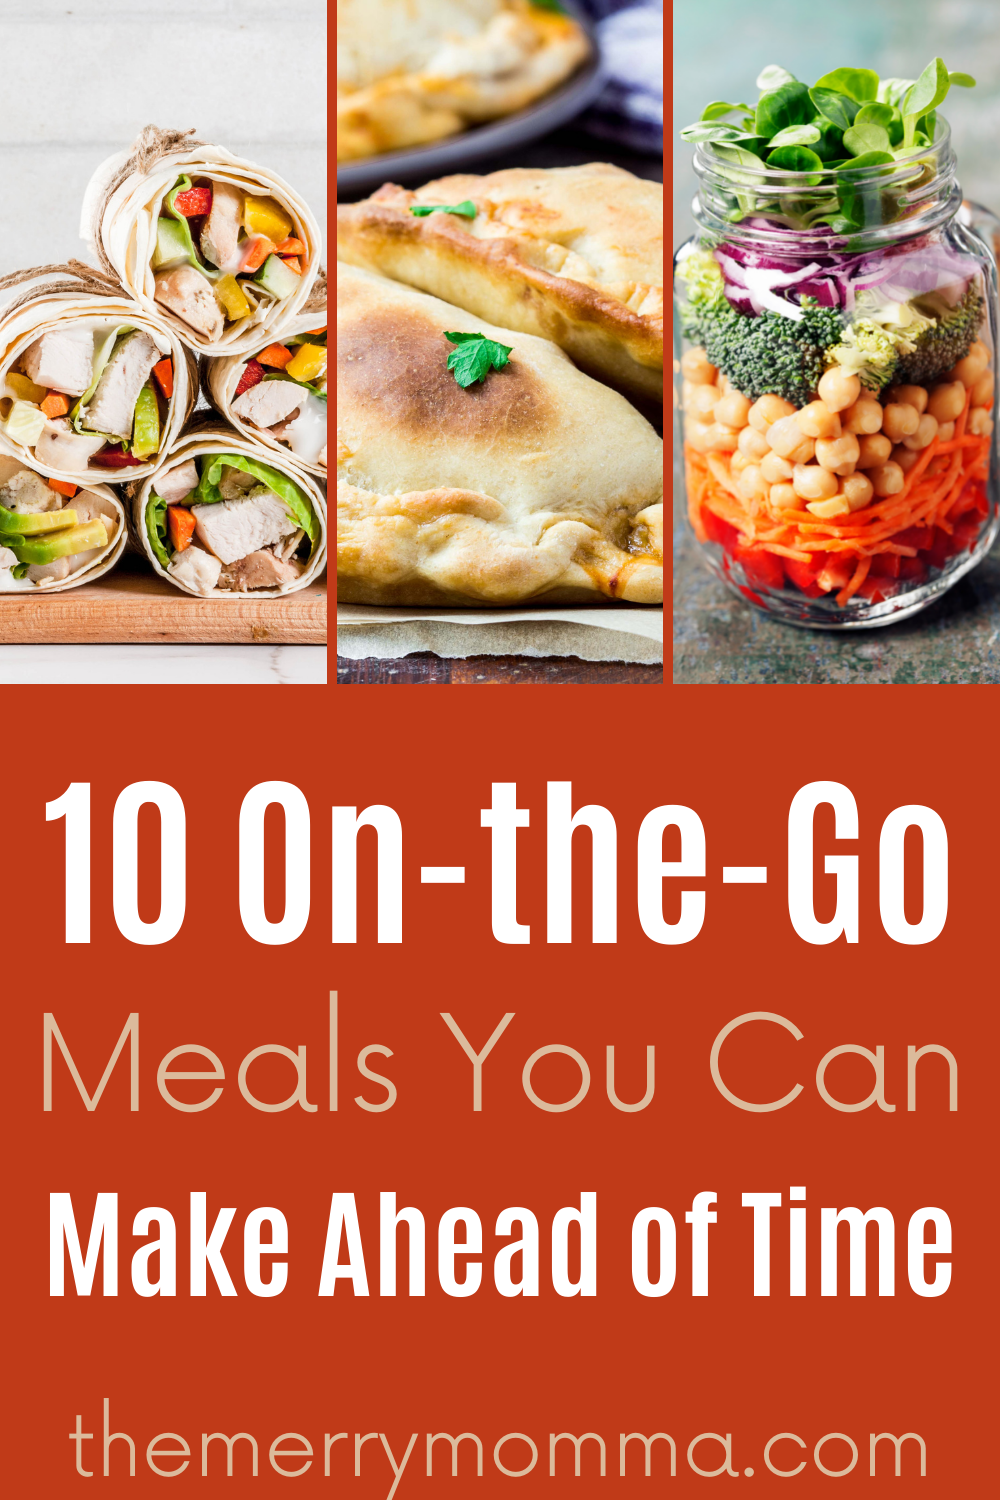 10 On-the-Go Meals You Can Make Ahead